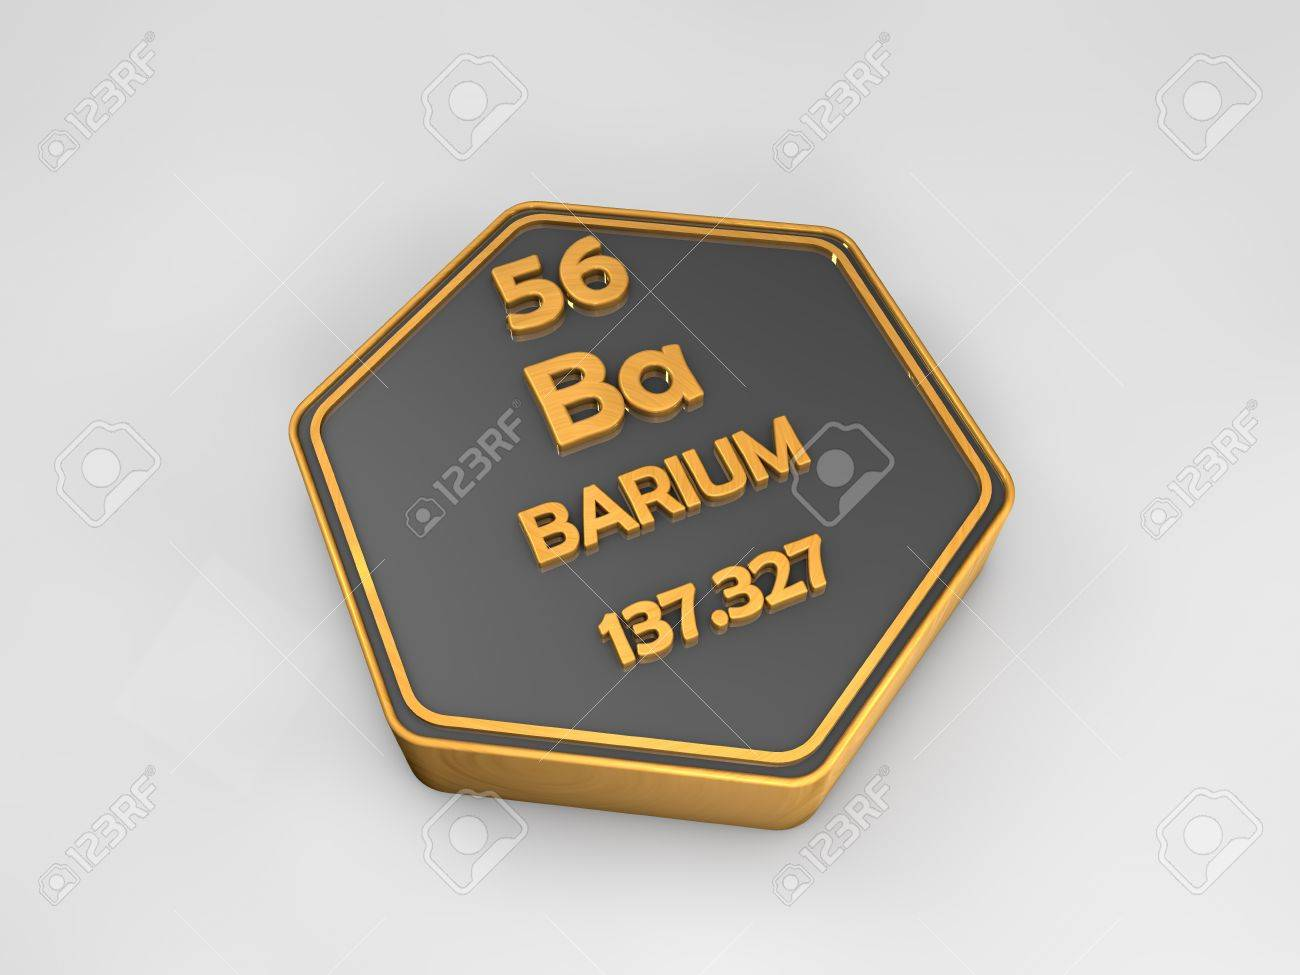 Periodic table element ba image collections periodic table images periodic table element ba choice image periodic table images periodic table element ba choice image periodic gamestrikefo Image collections